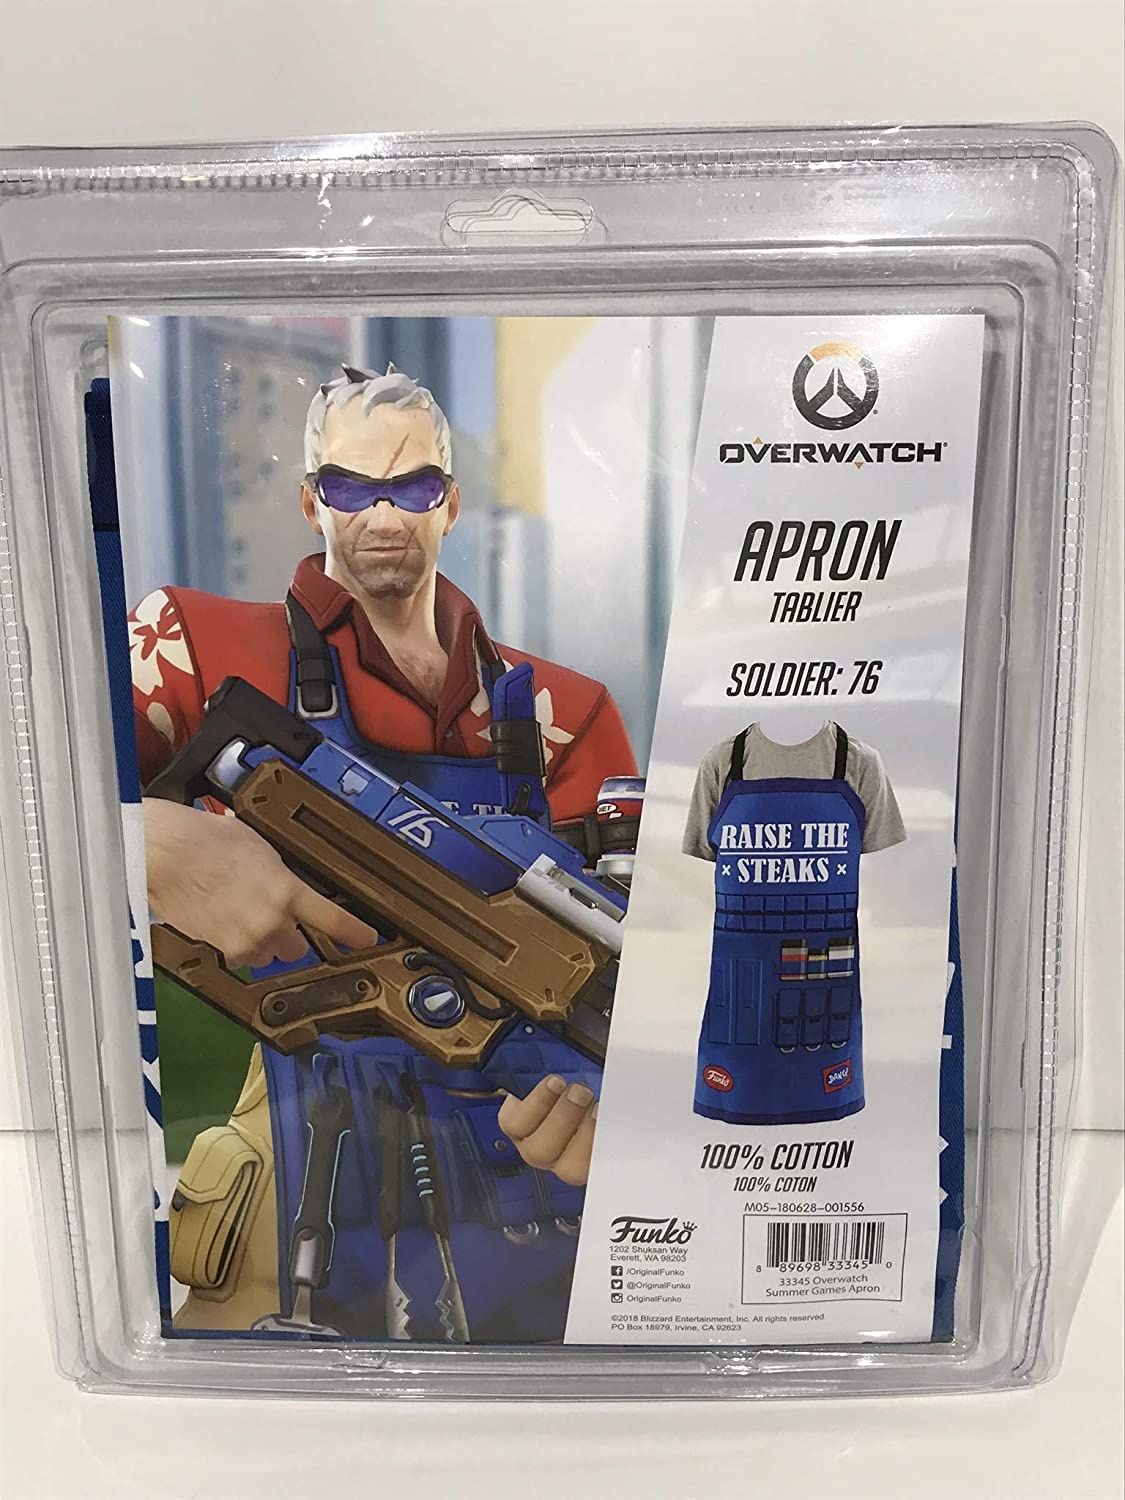 Overwatch Apron Tablier - Soldier:76